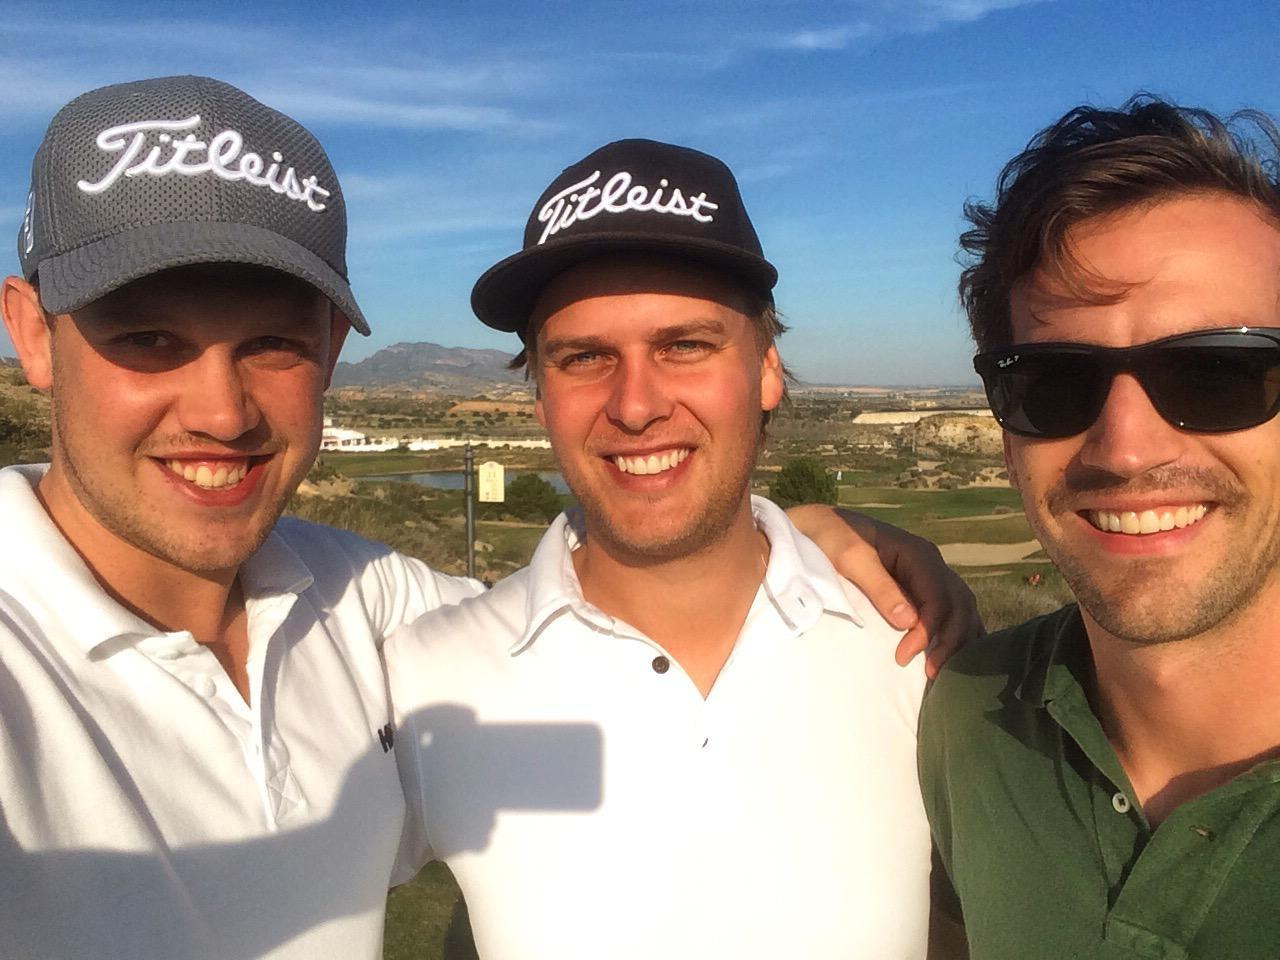 Felix (on the left) with his golf buddies enjoying a round of golf.